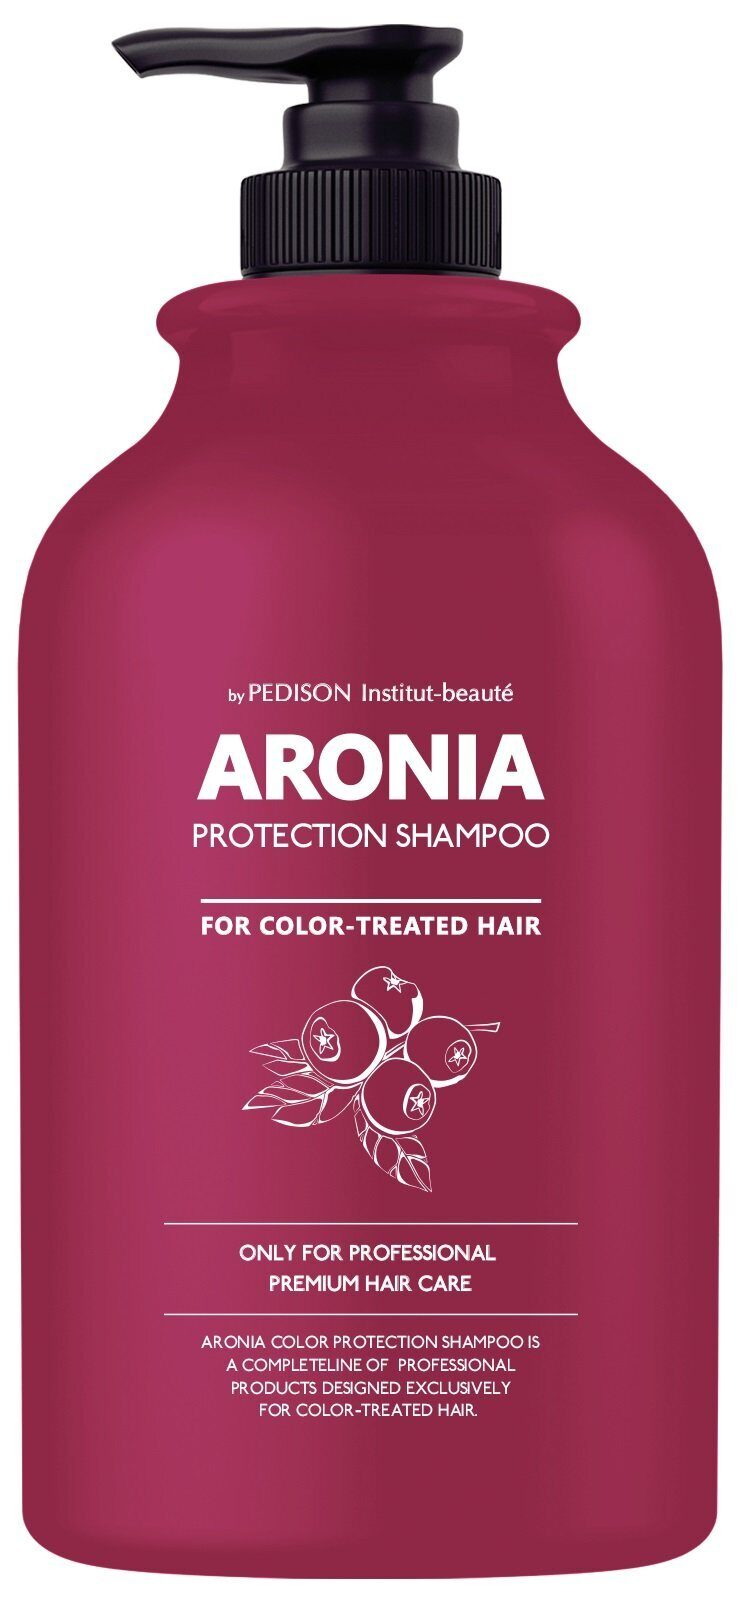 [Pedison] Шампунь для волос АРОНИЯ Institute-beaut Aronia Color Protection Shampoo, 500 мл